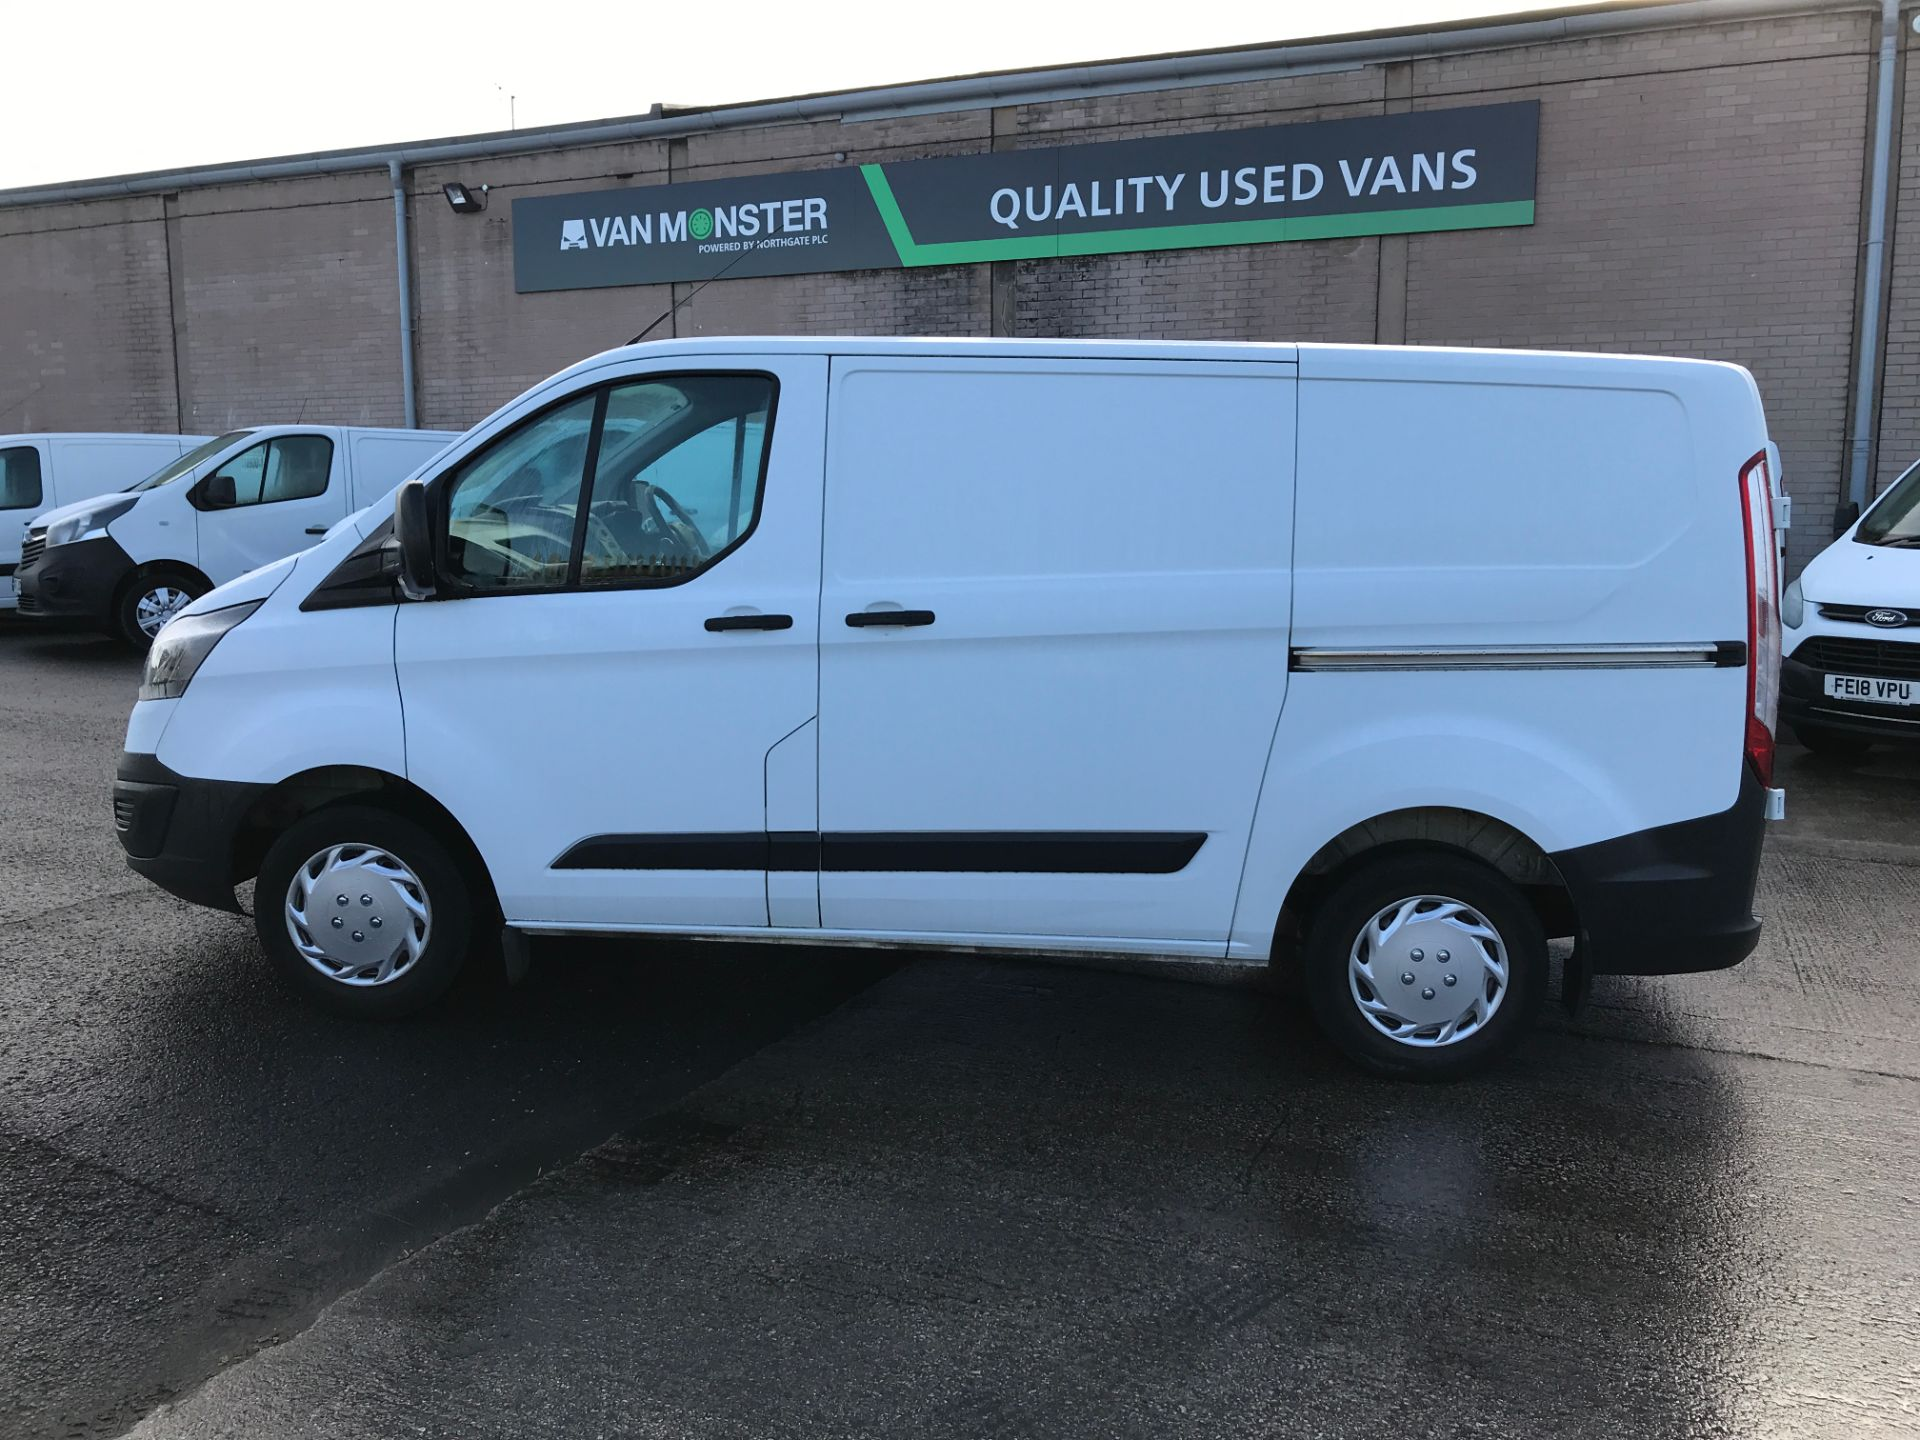 2017 Ford Transit Custom 290 L1 2.0TDCI 105PS LOW ROOF EURO 6 (FL67OXV) Image 11